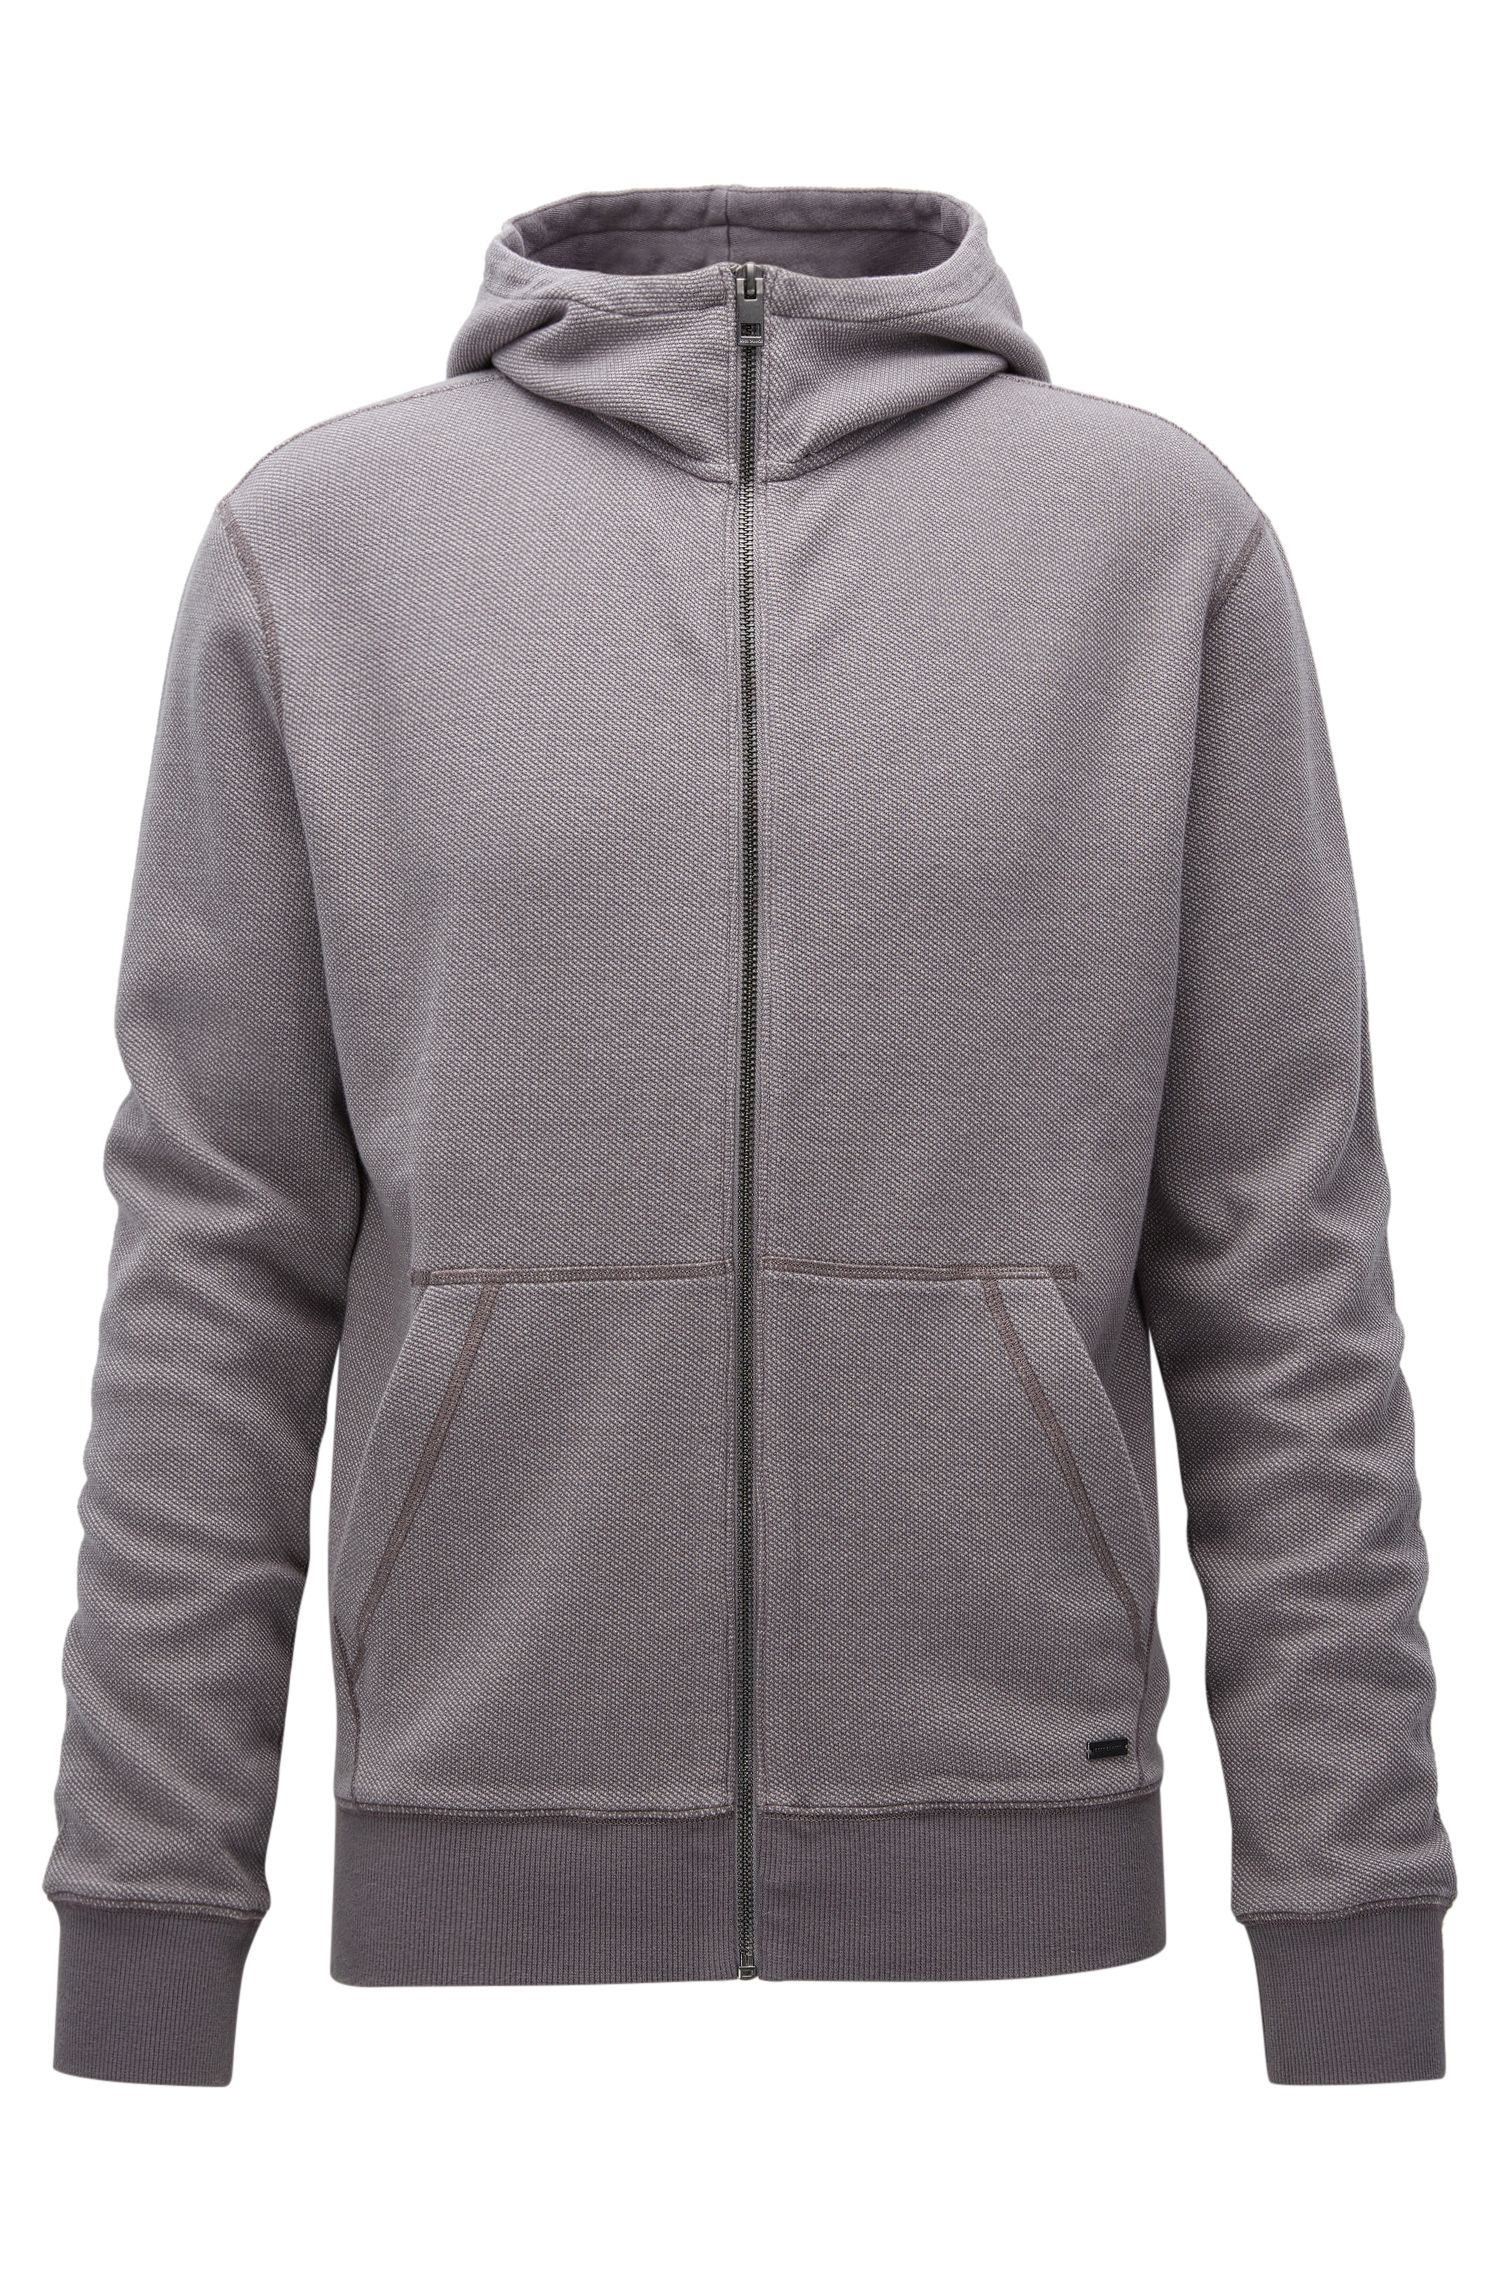 Zip-through hooded sweatshirt in interlock cotton